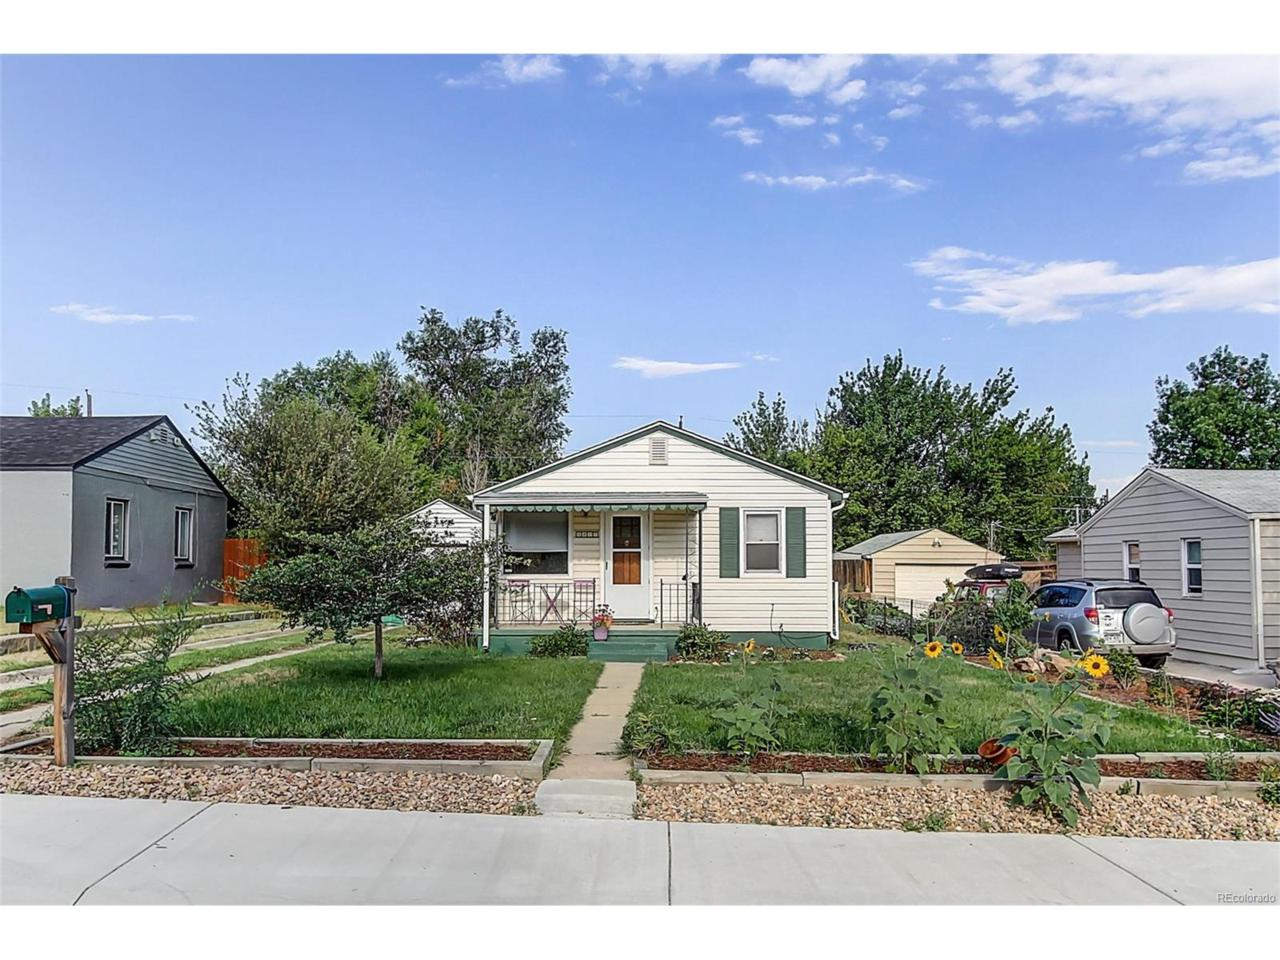 5247 Quitman Street, Denver, CO 80212 (MLS #8497112) :: 8z Real Estate